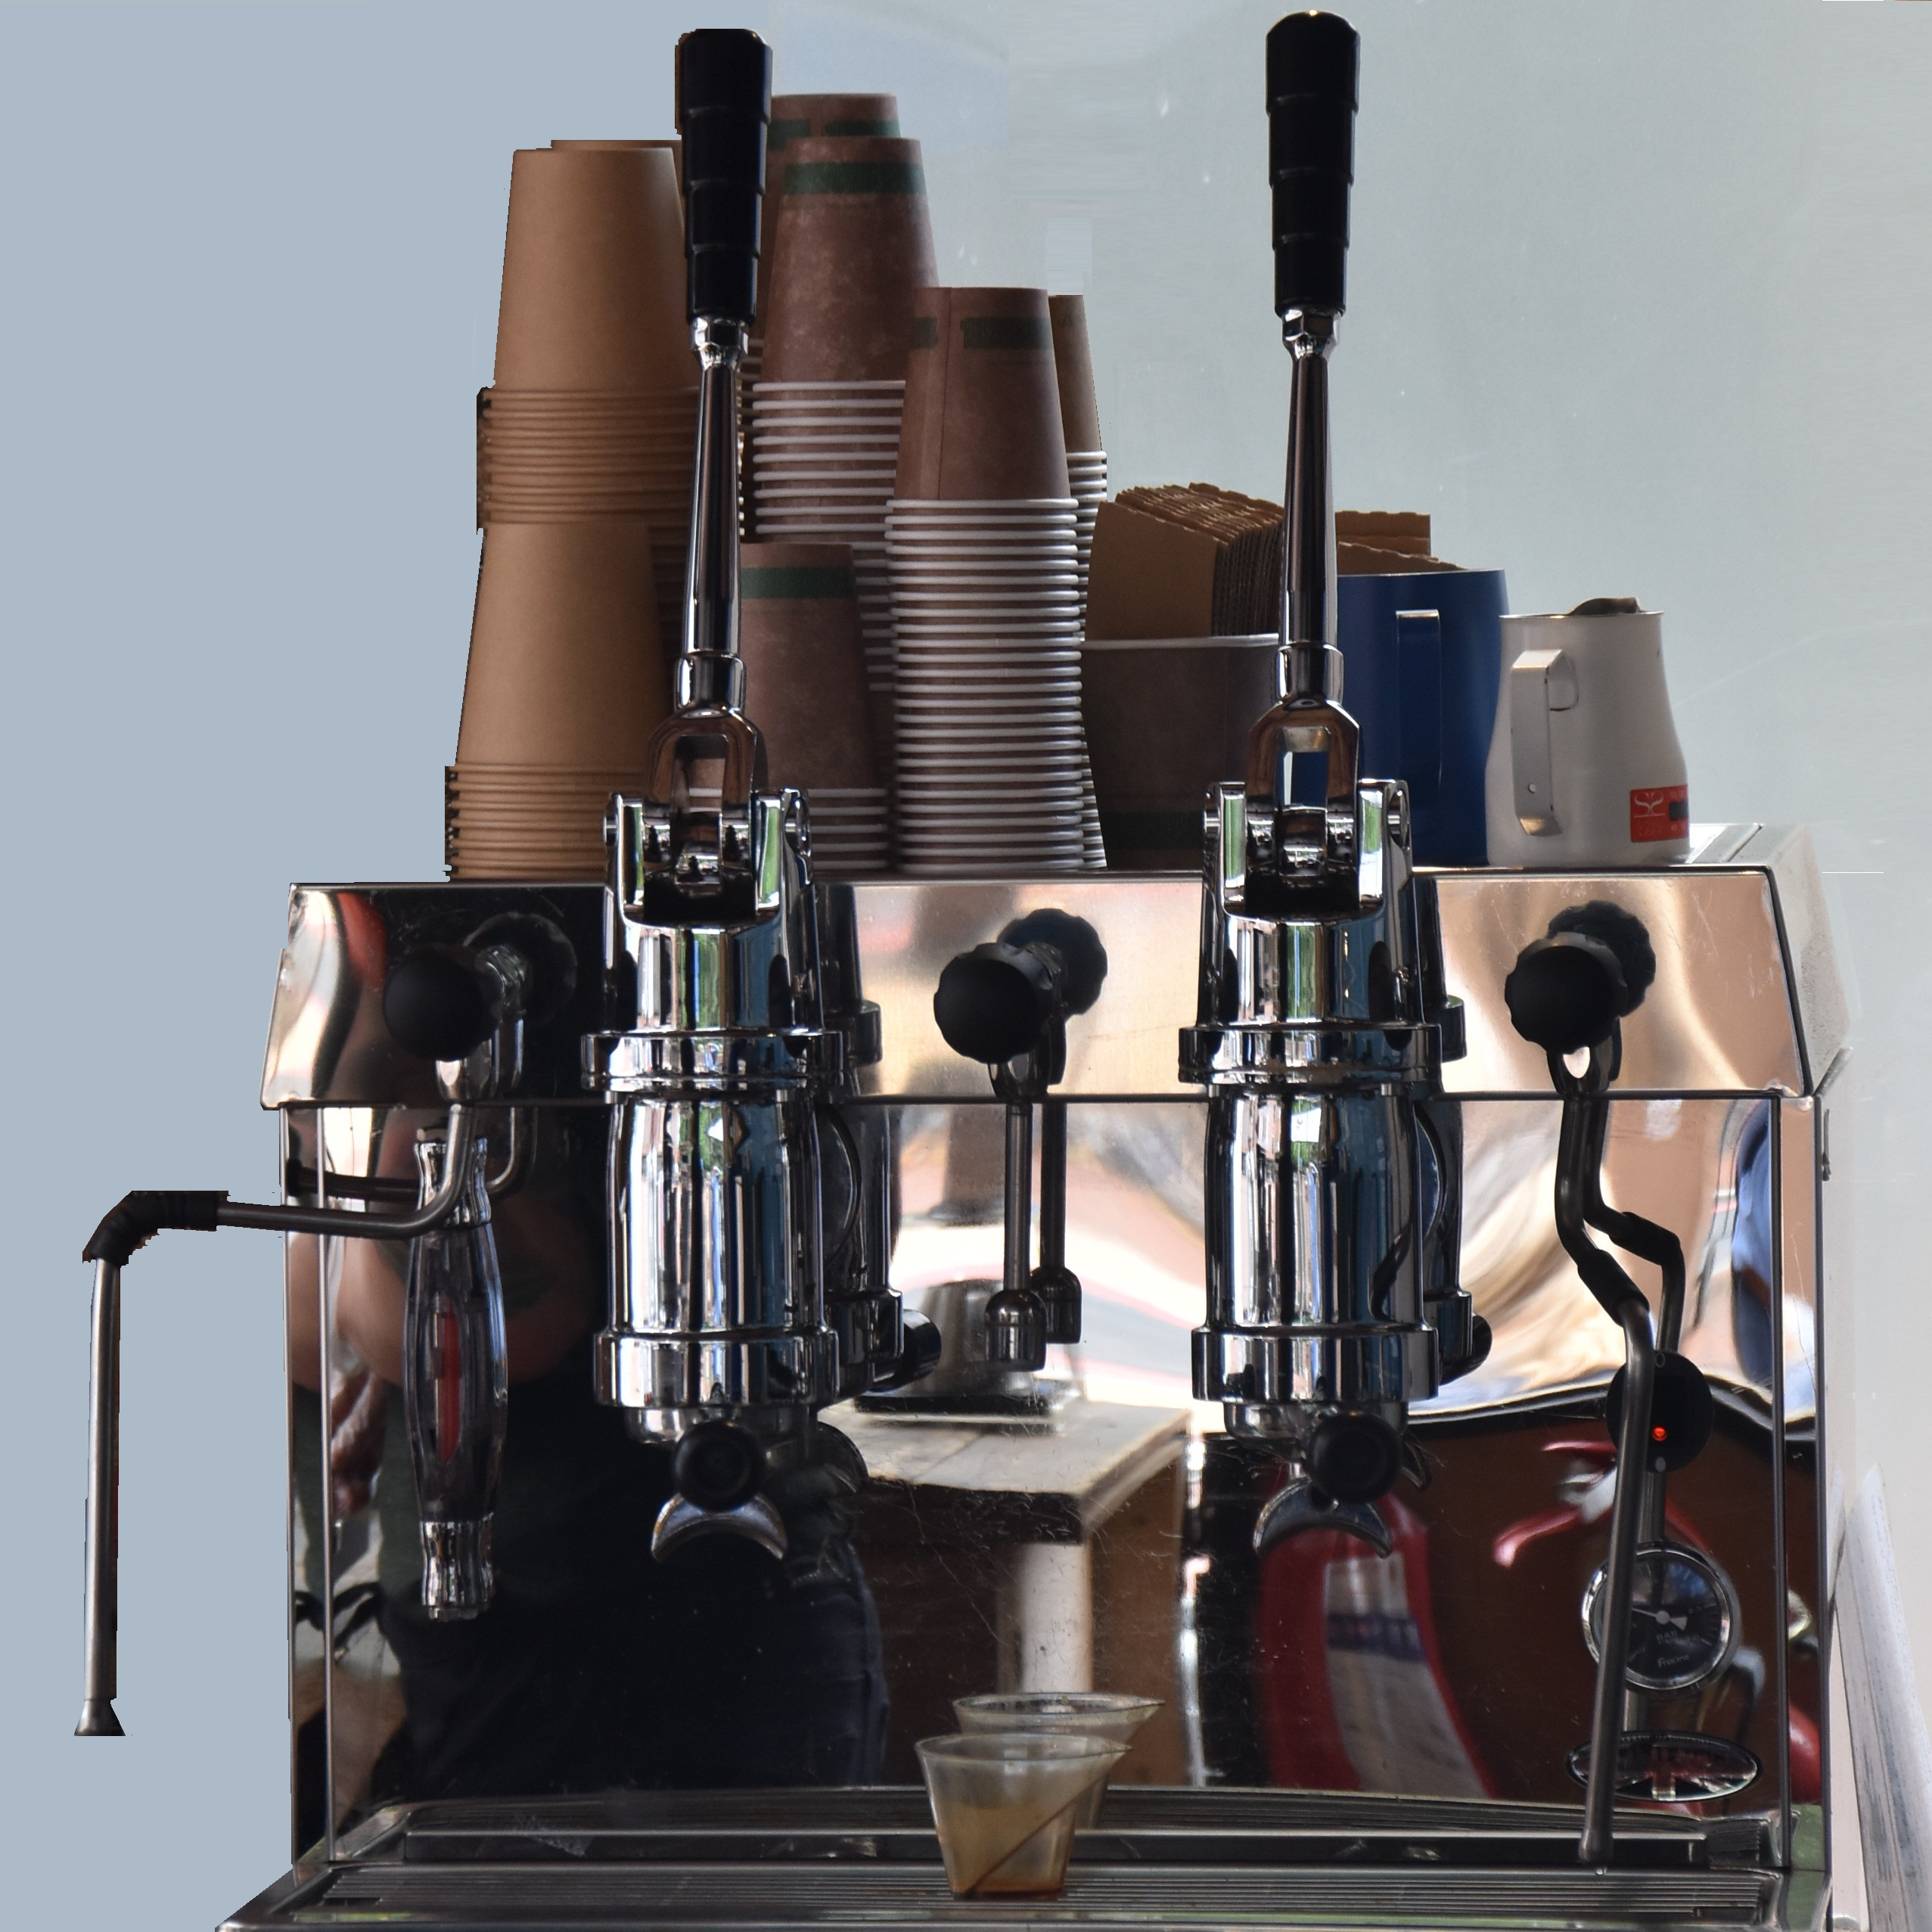 The two-group Francino lever espresso machine in the Tamp Culture kiosk in Reading.